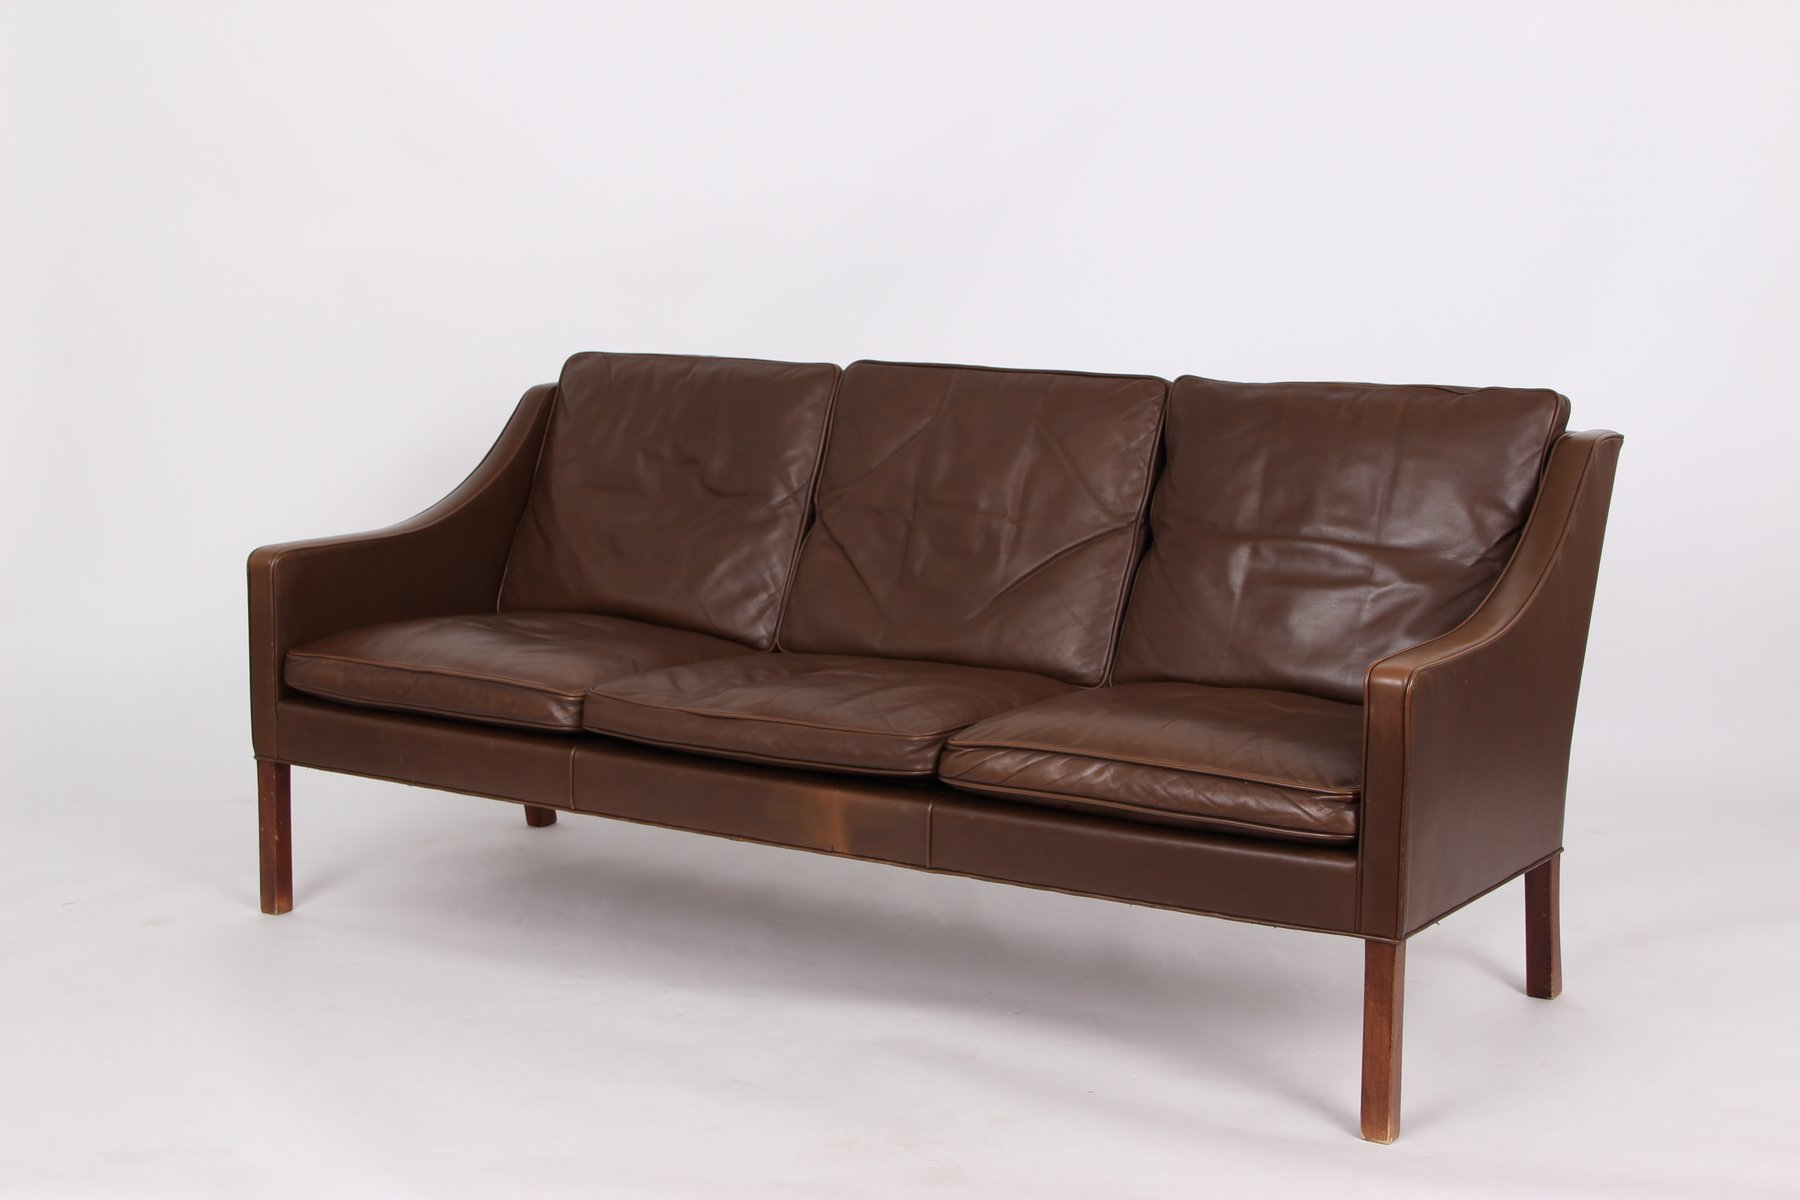 Inhofer Kinosessel Couch Sessel